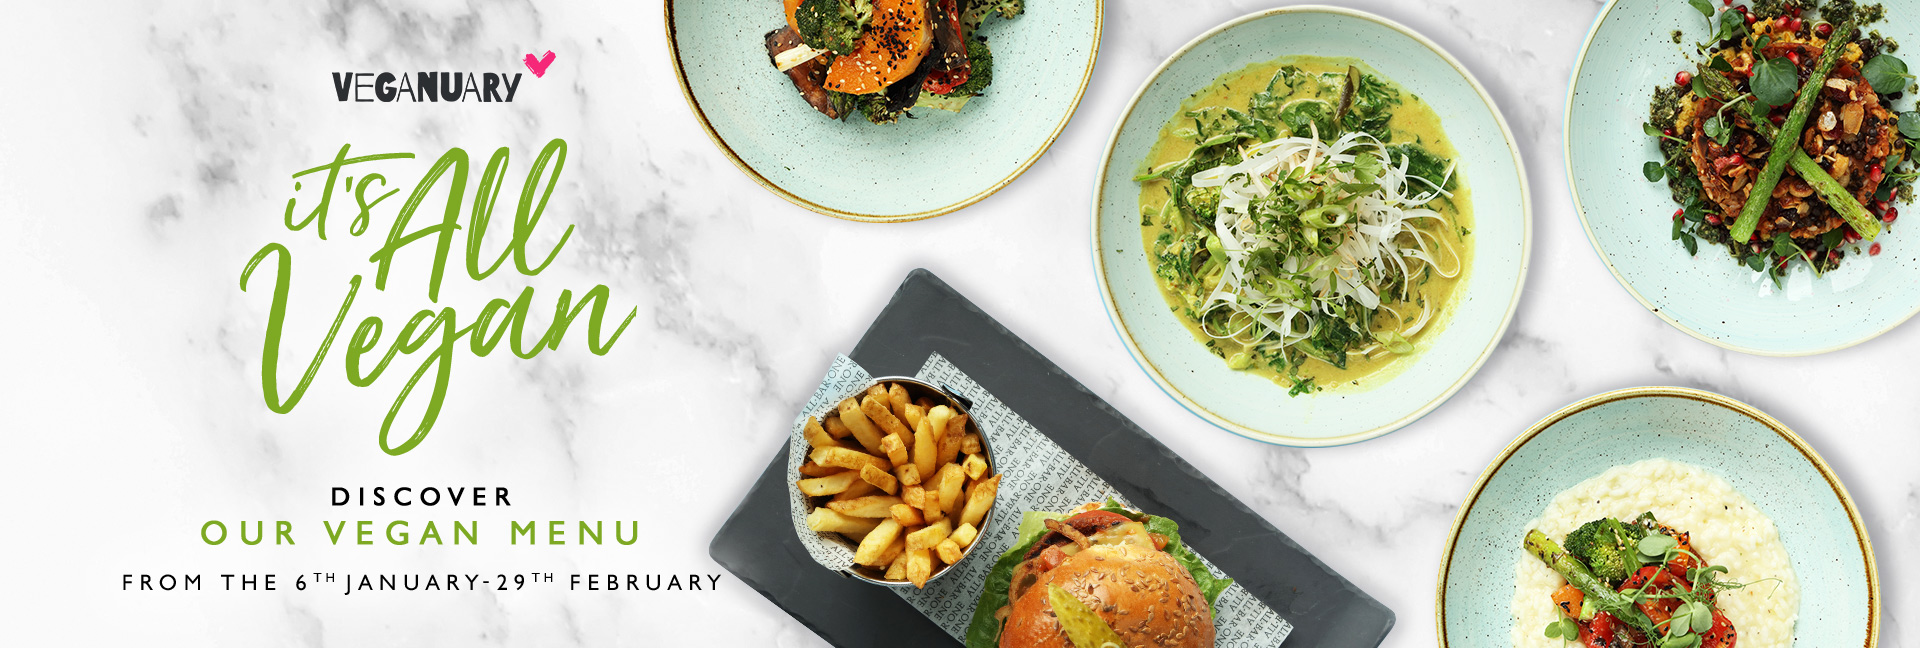 Veganuary Menu at All Bar One Picton Place